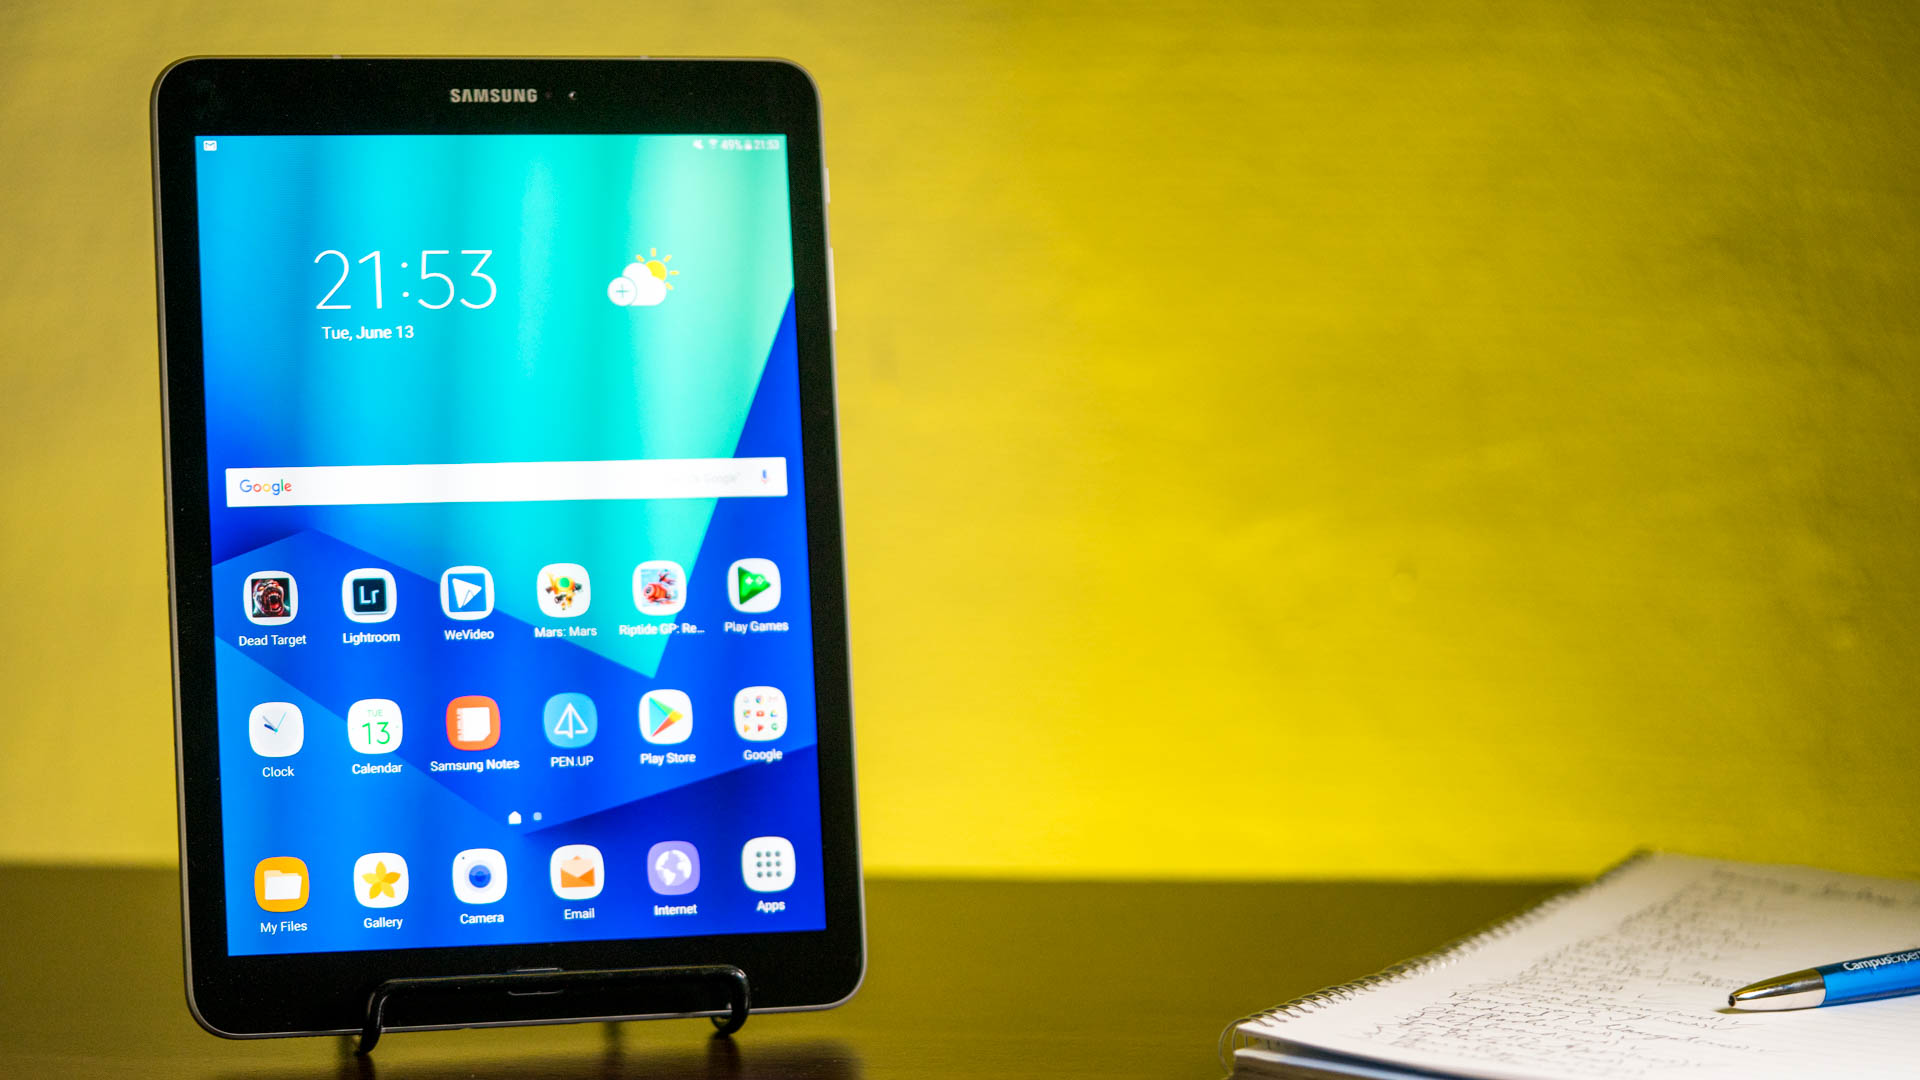 Samsung Galaxy Tab S3 Review: Best Android Tablet in 2017?